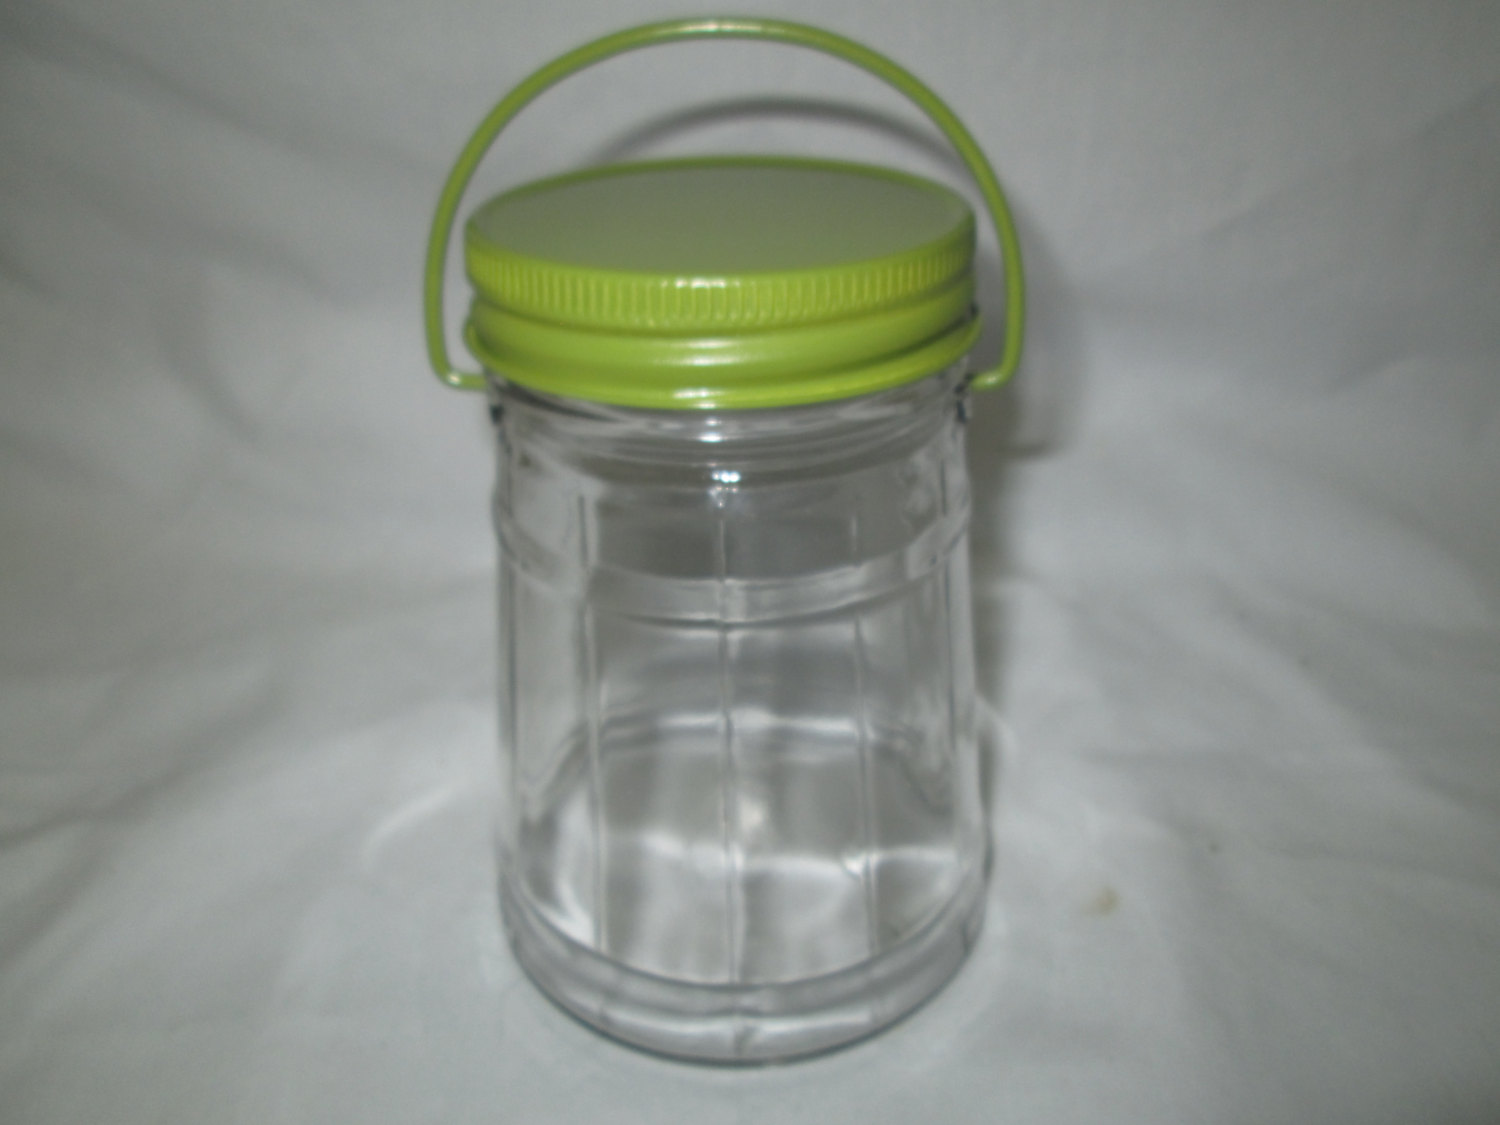 Vintage glass pickle jar with green metal lid and bail wire handle